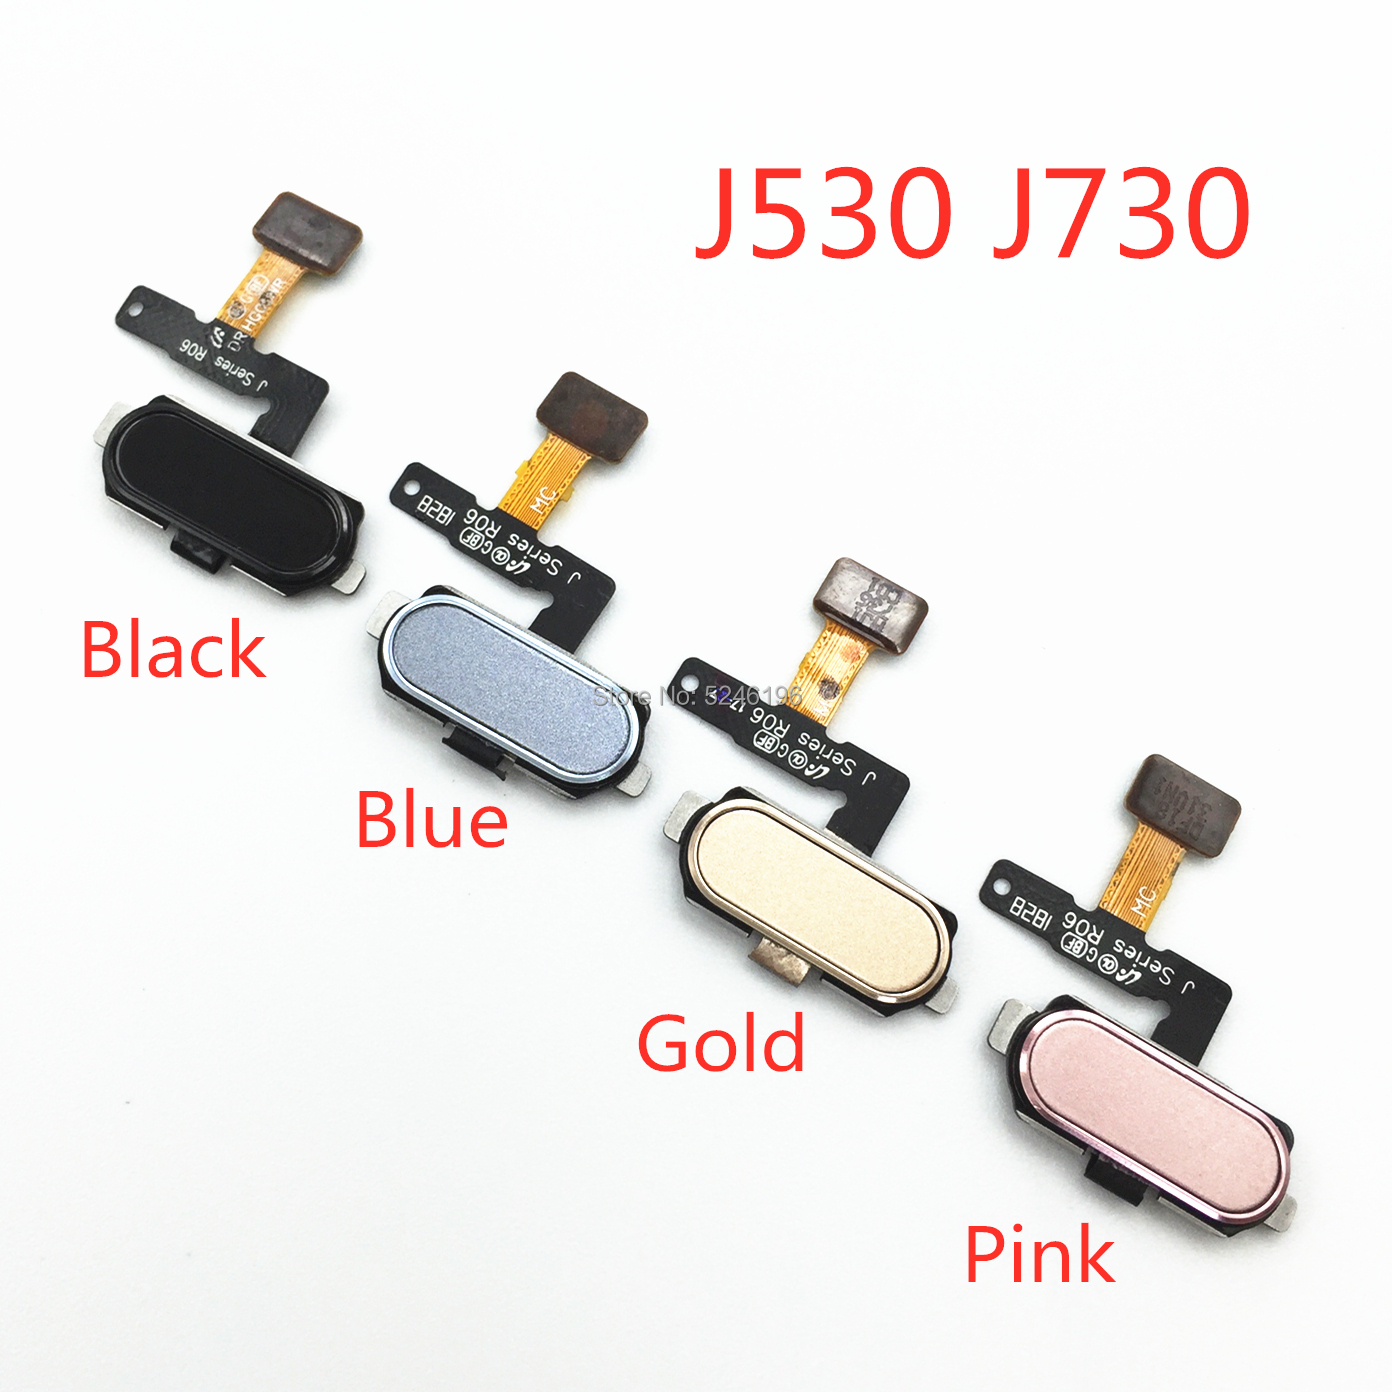 1pcs Home Return Key Menu Button Fingerprint Sensor Flex Cable For Samsung Galaxy J5 J7 Pro 2017 J530 J730 Original Parts